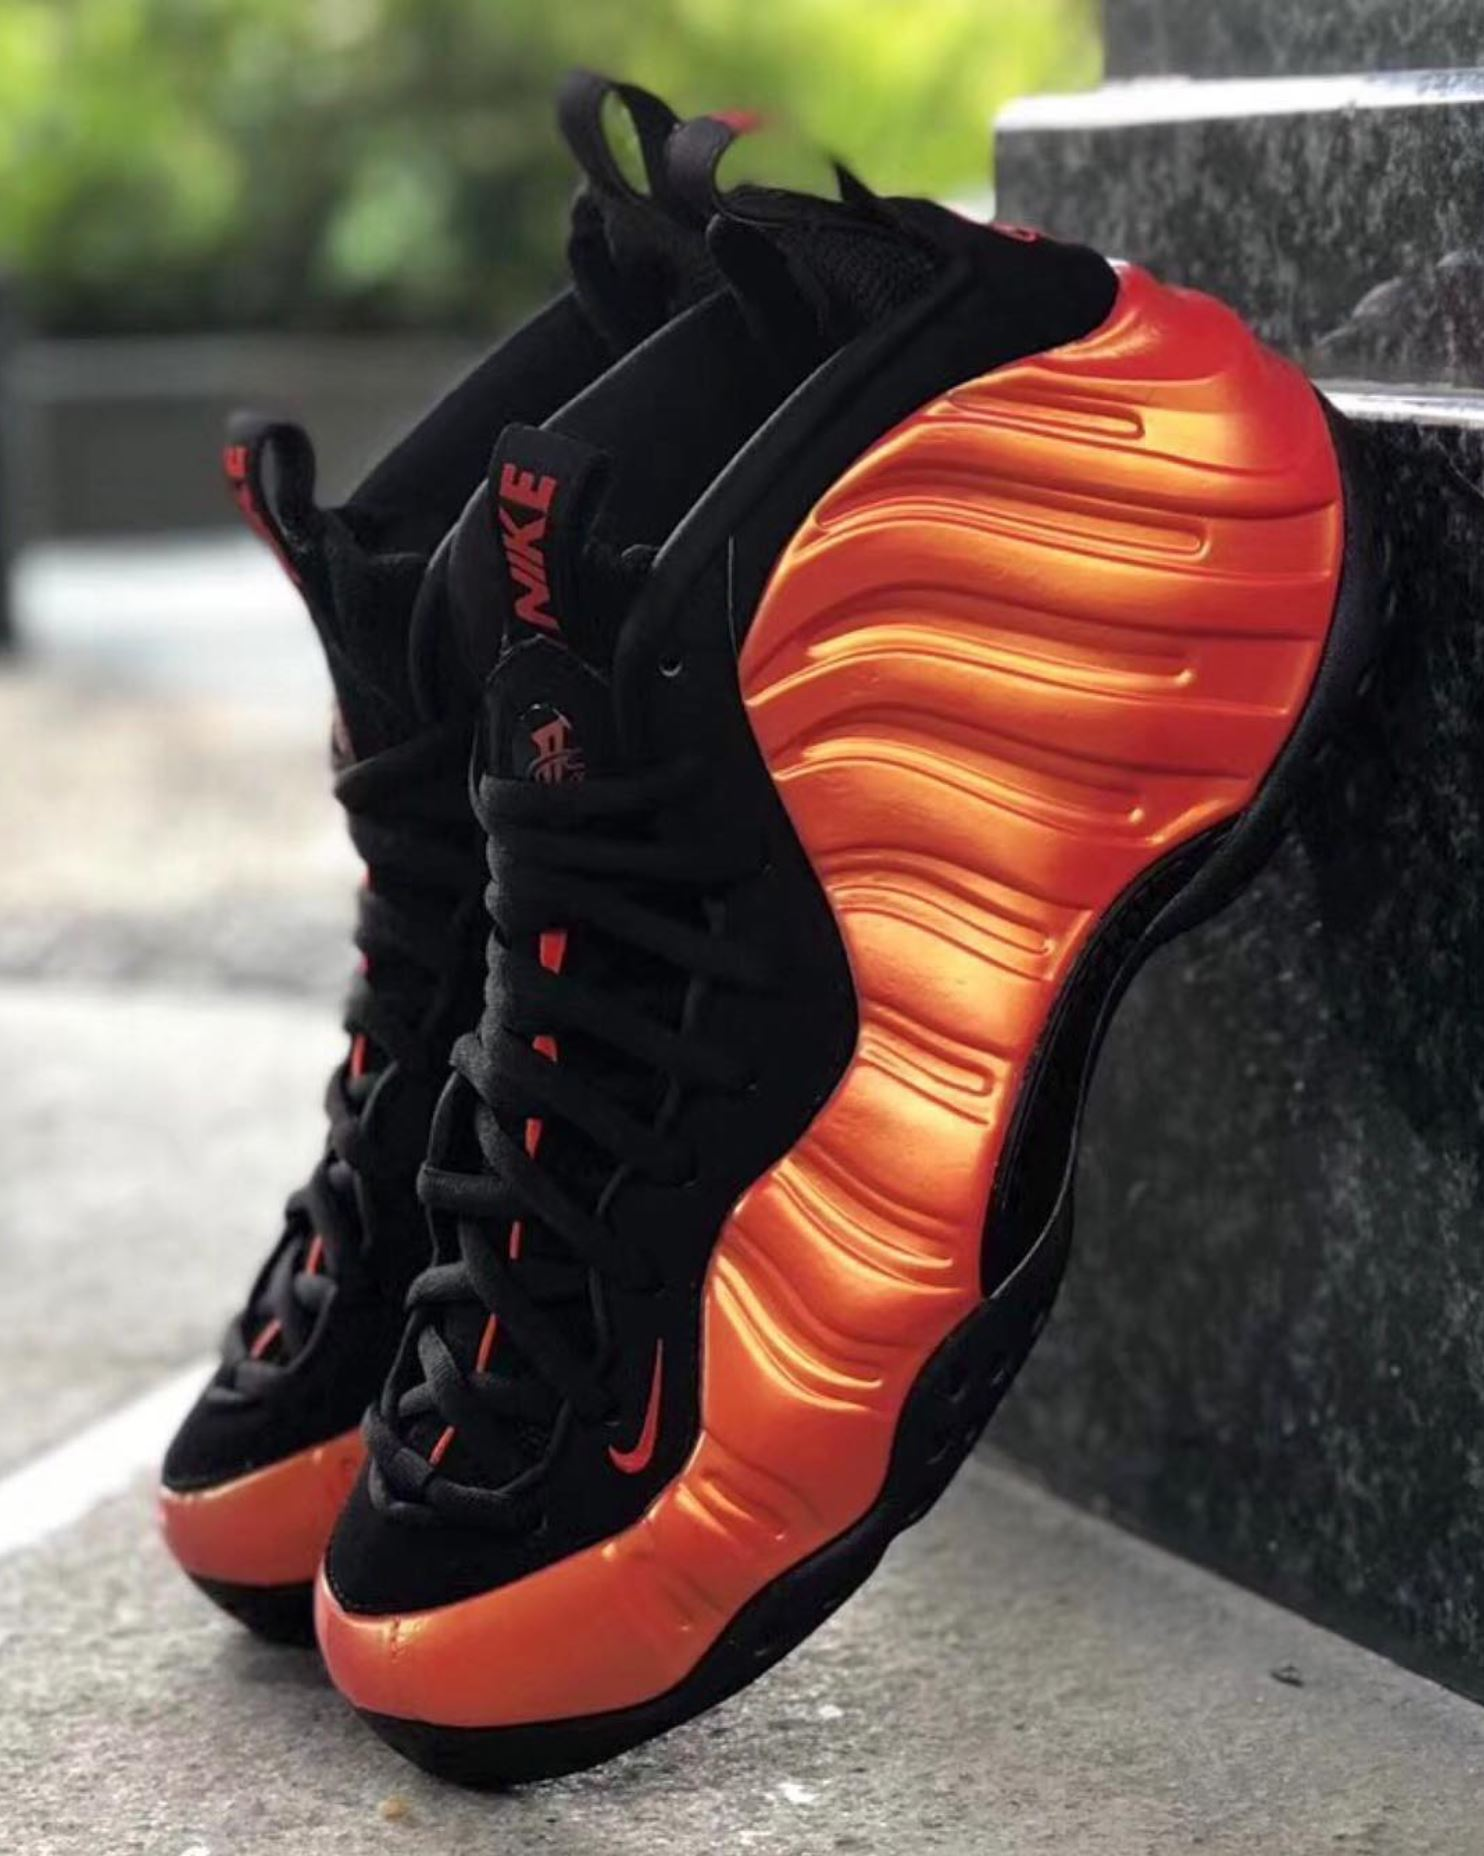 6b82d00c700f8 ... usa nike air foamposite one habanero red release date a9a0b 6c187